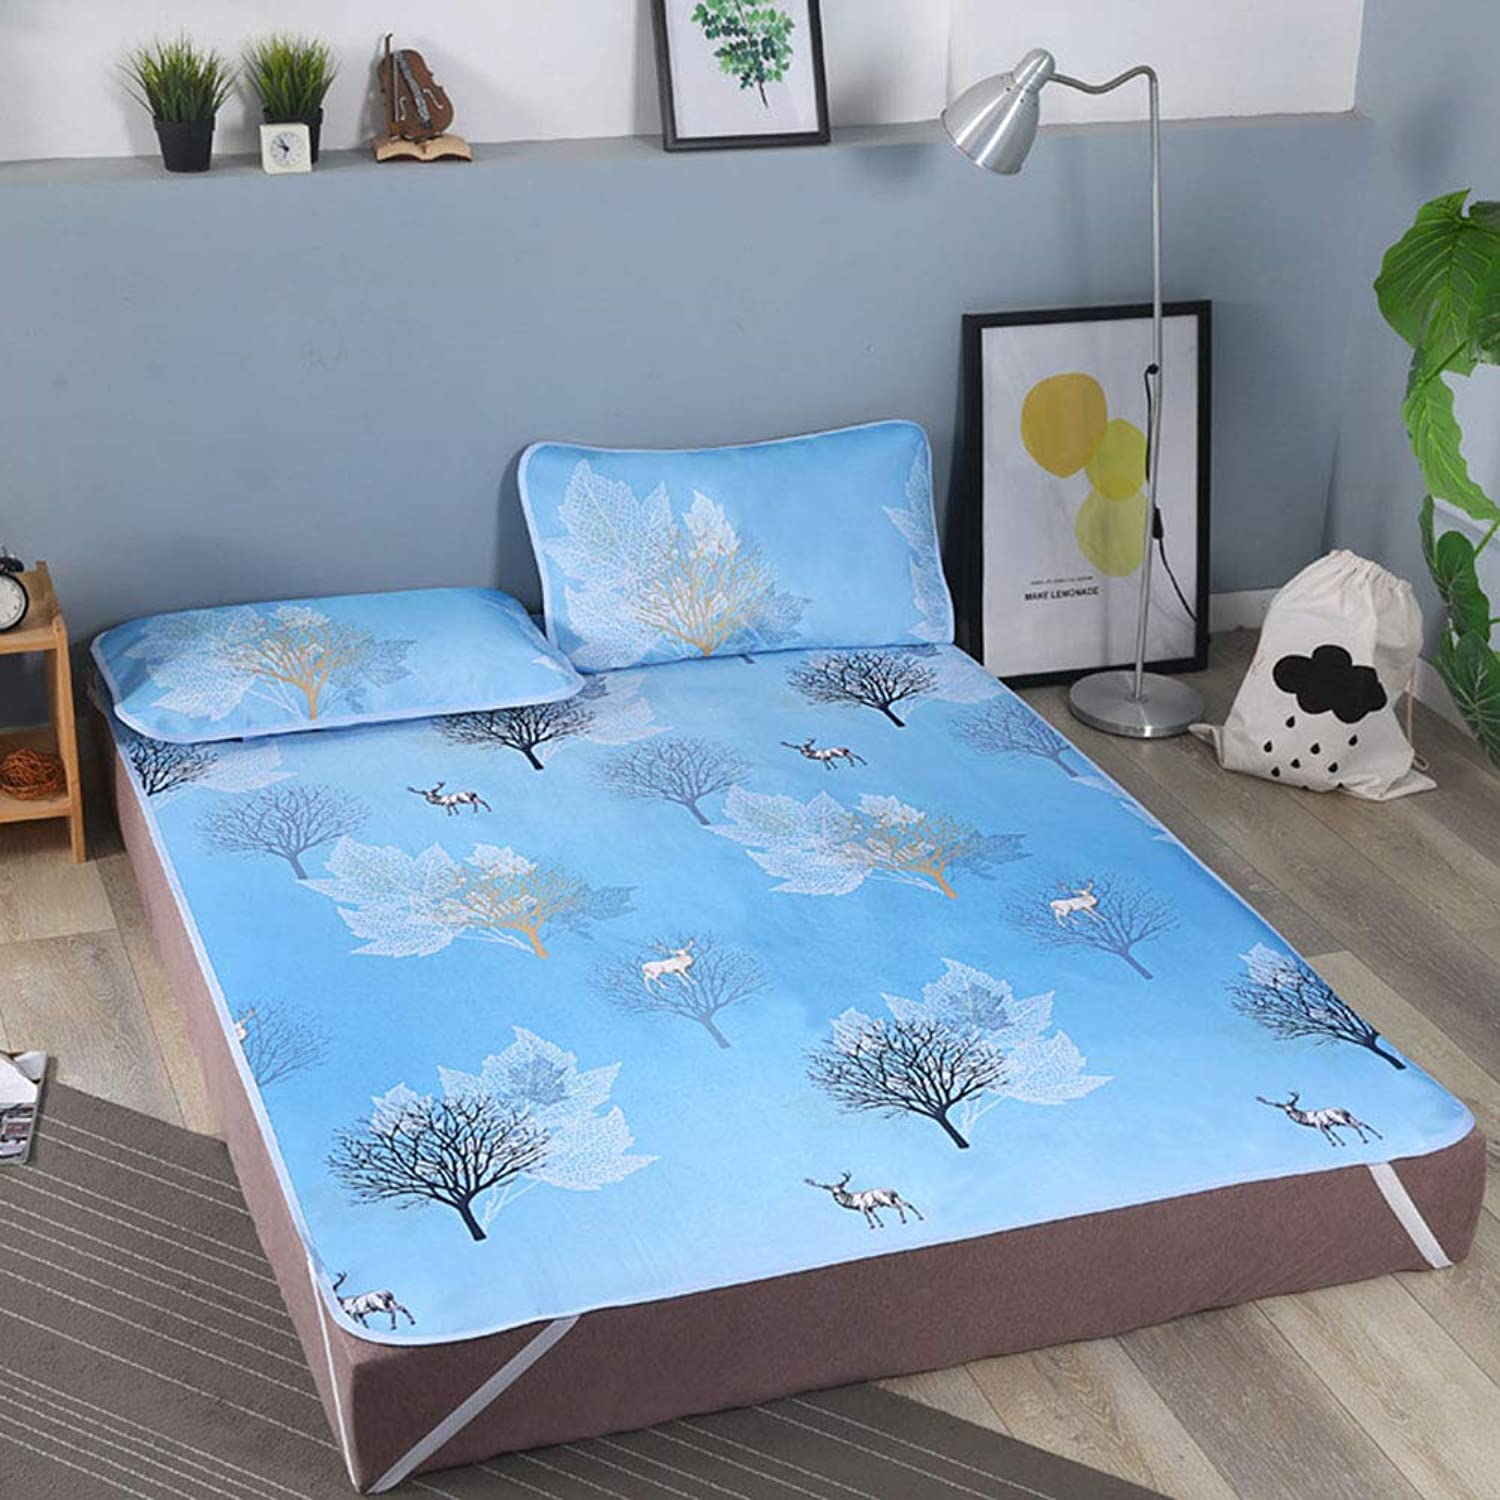 Summer Mattress, Three-Piece, Foldable Washable Printed Ice Silk Non-Slip Summer Cool Sleeping Mat, Suitable for Home, Dormitory, Gift D 1.8X2m